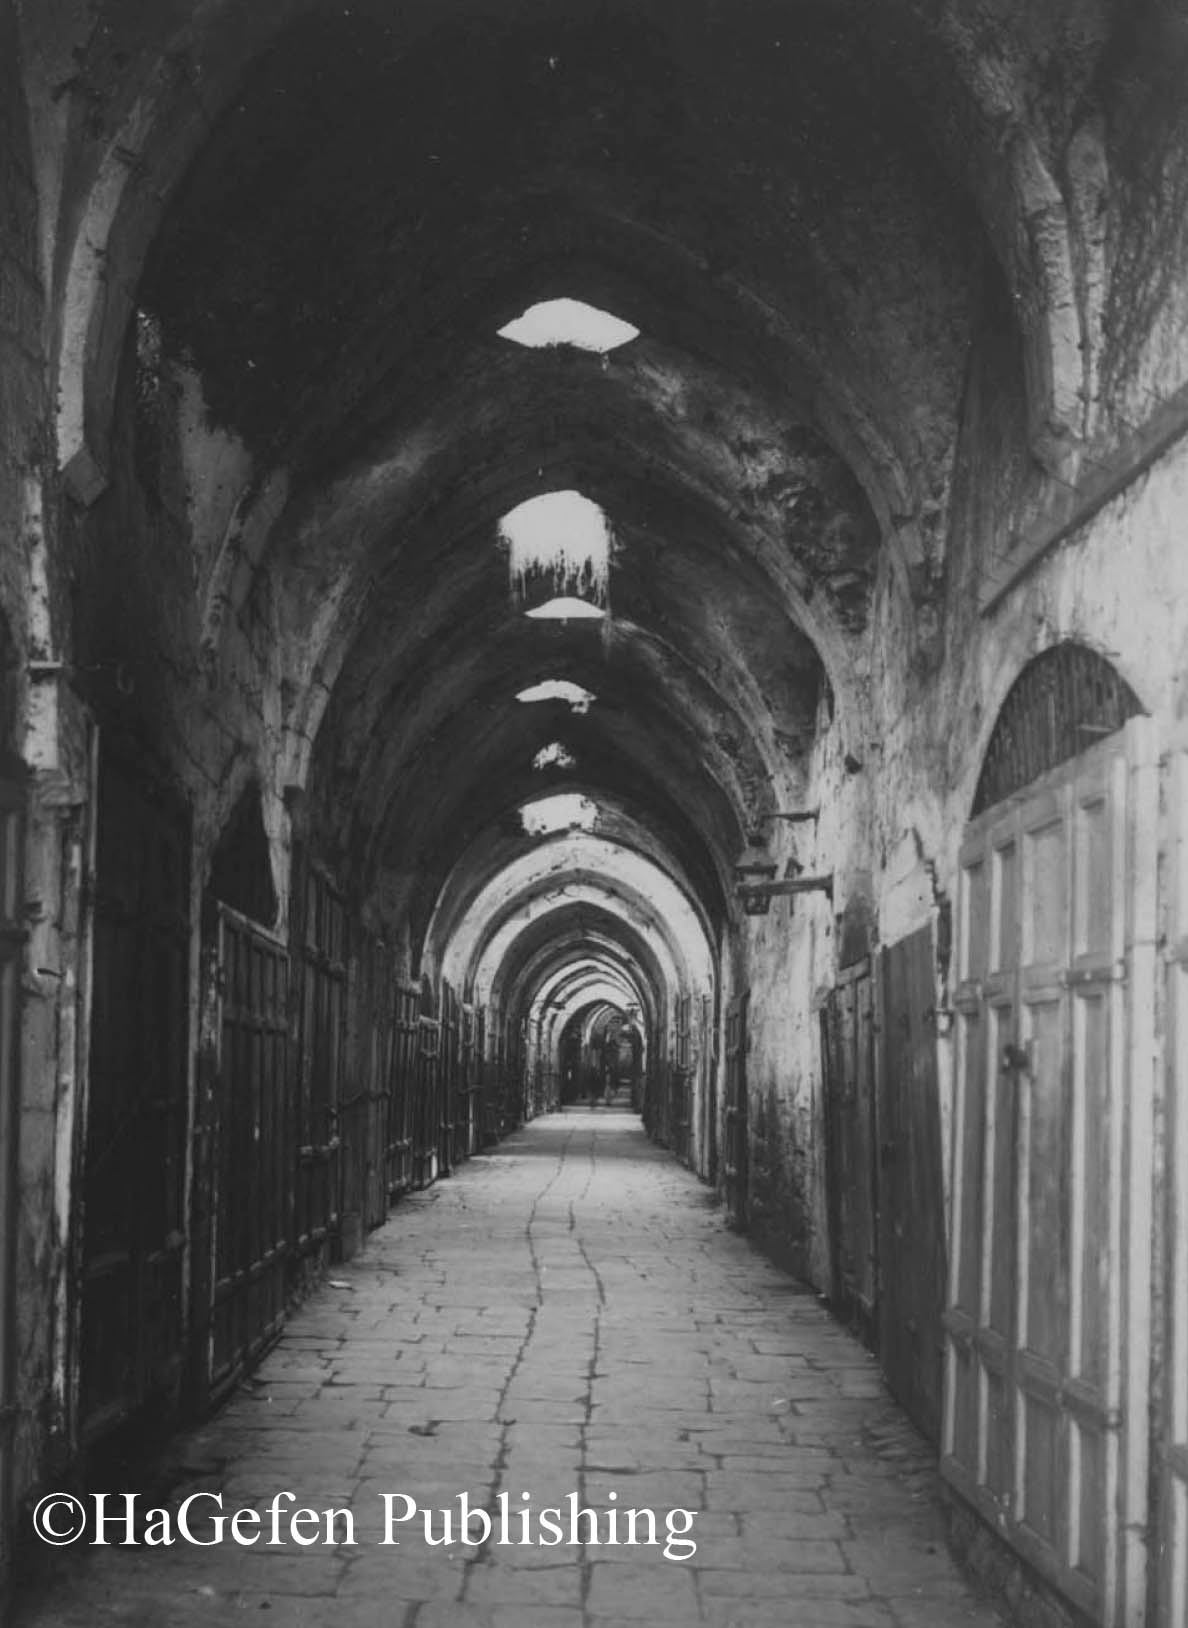 Closed stores in protest of Lord Balfour's arrival in Jerusalem, 1925